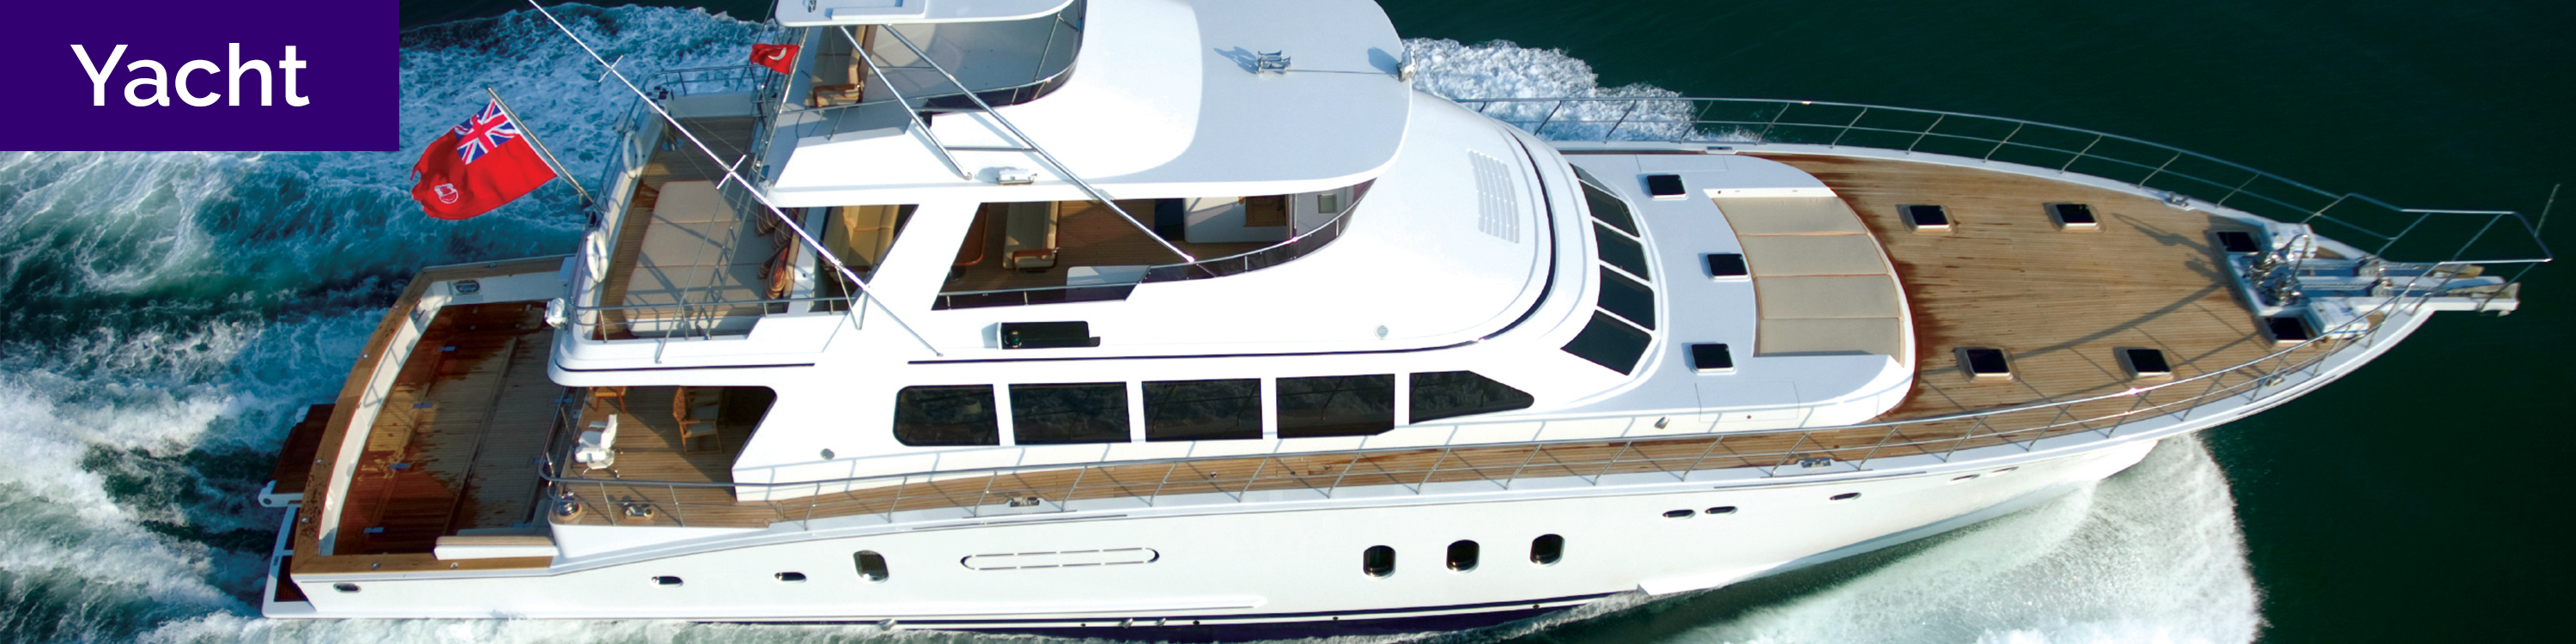 """Text: """"yacht"""" over image of small yacht"""